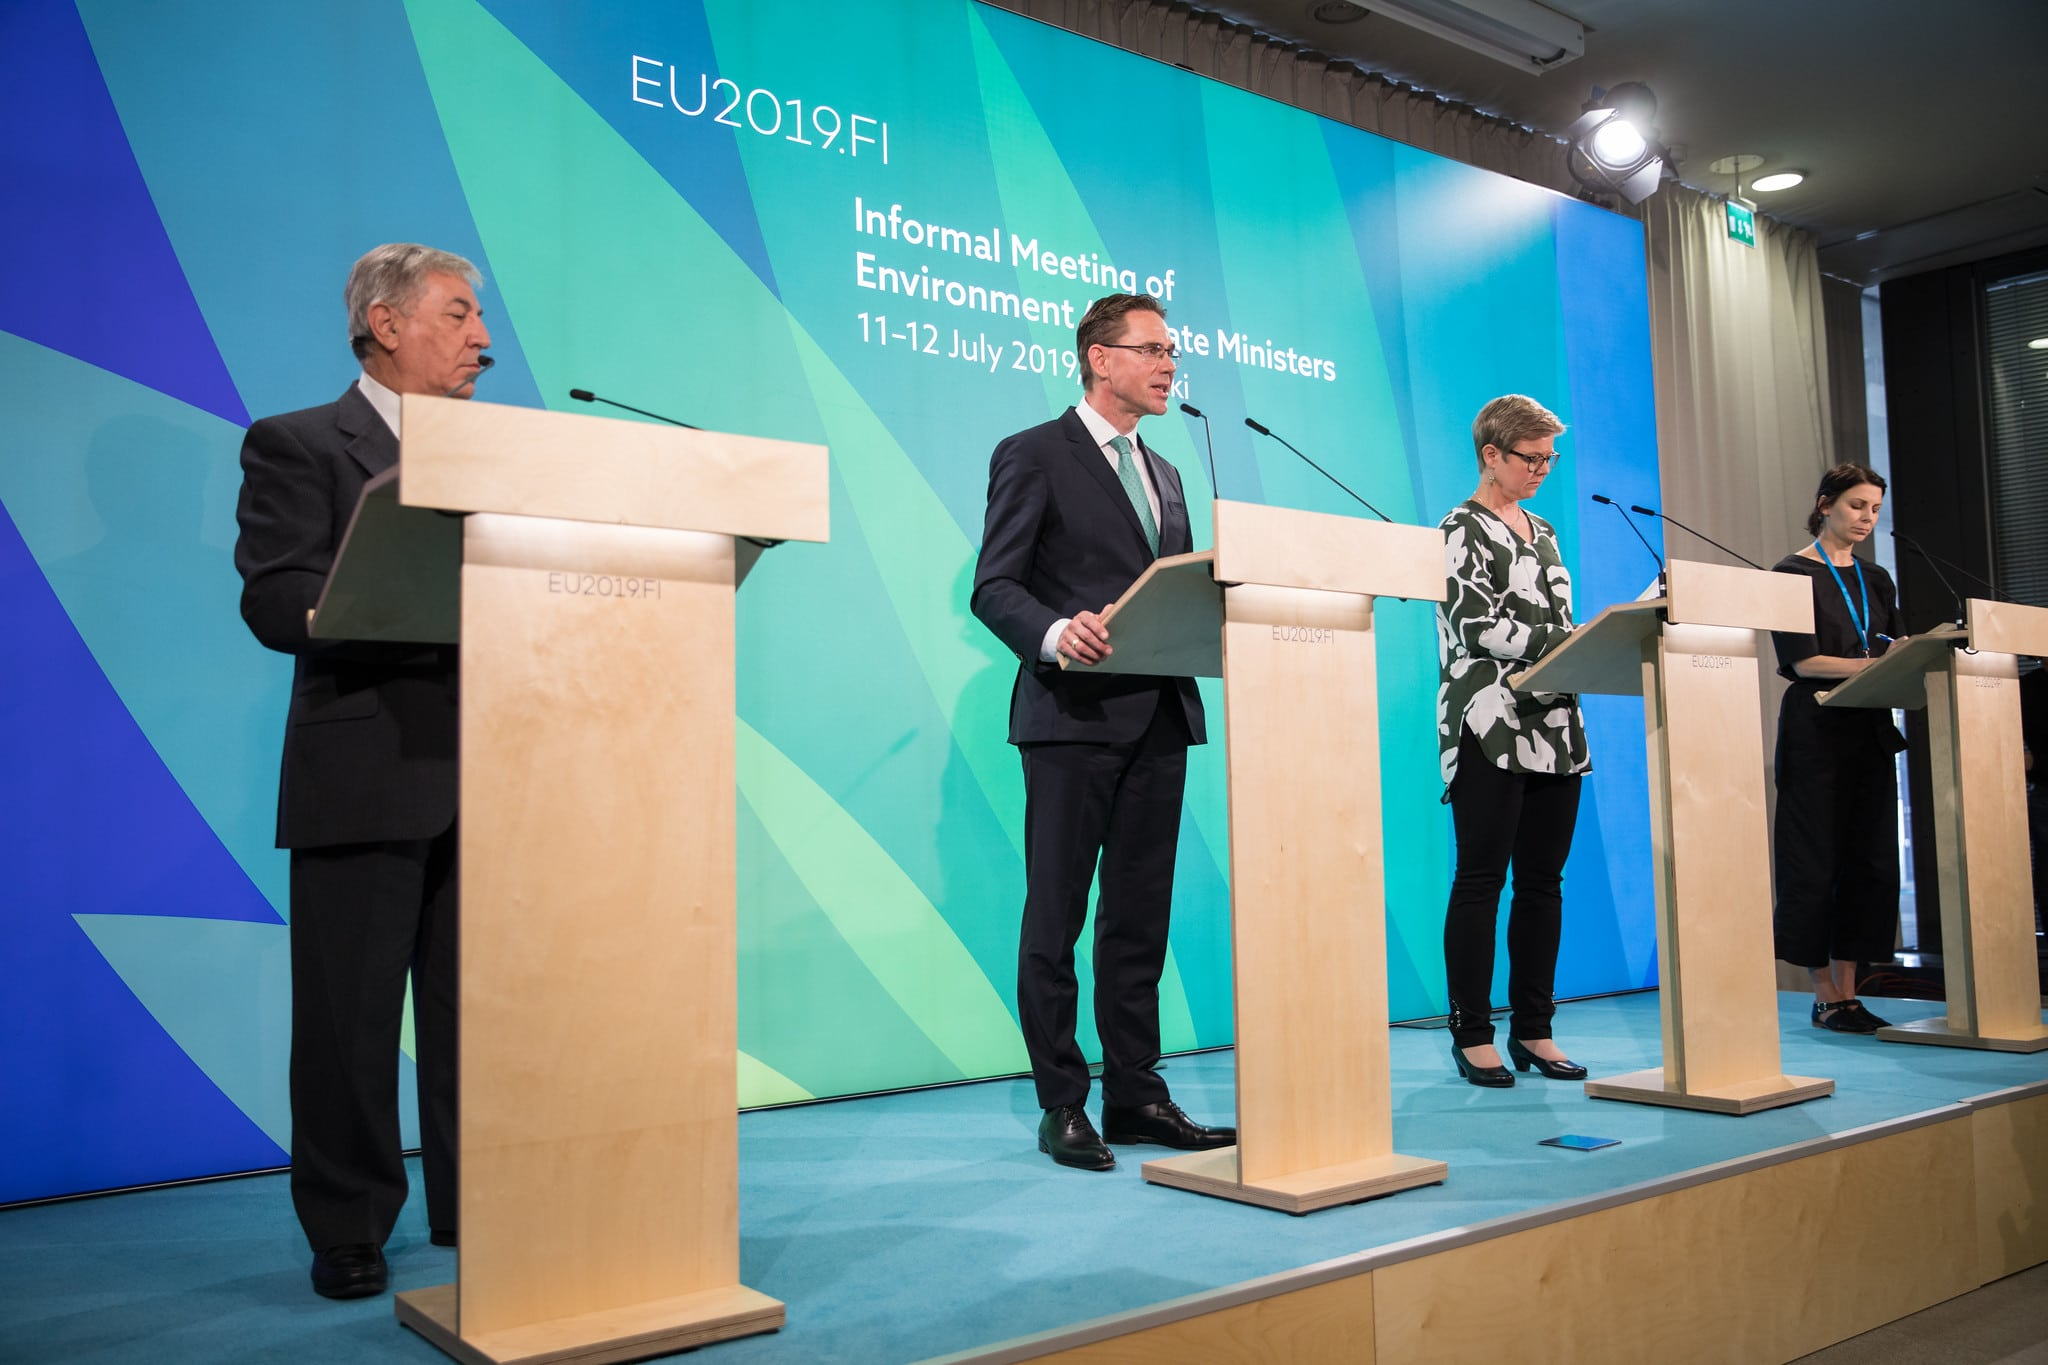 EU Environment and Climate Ministers support a shift towards a truly circular economy